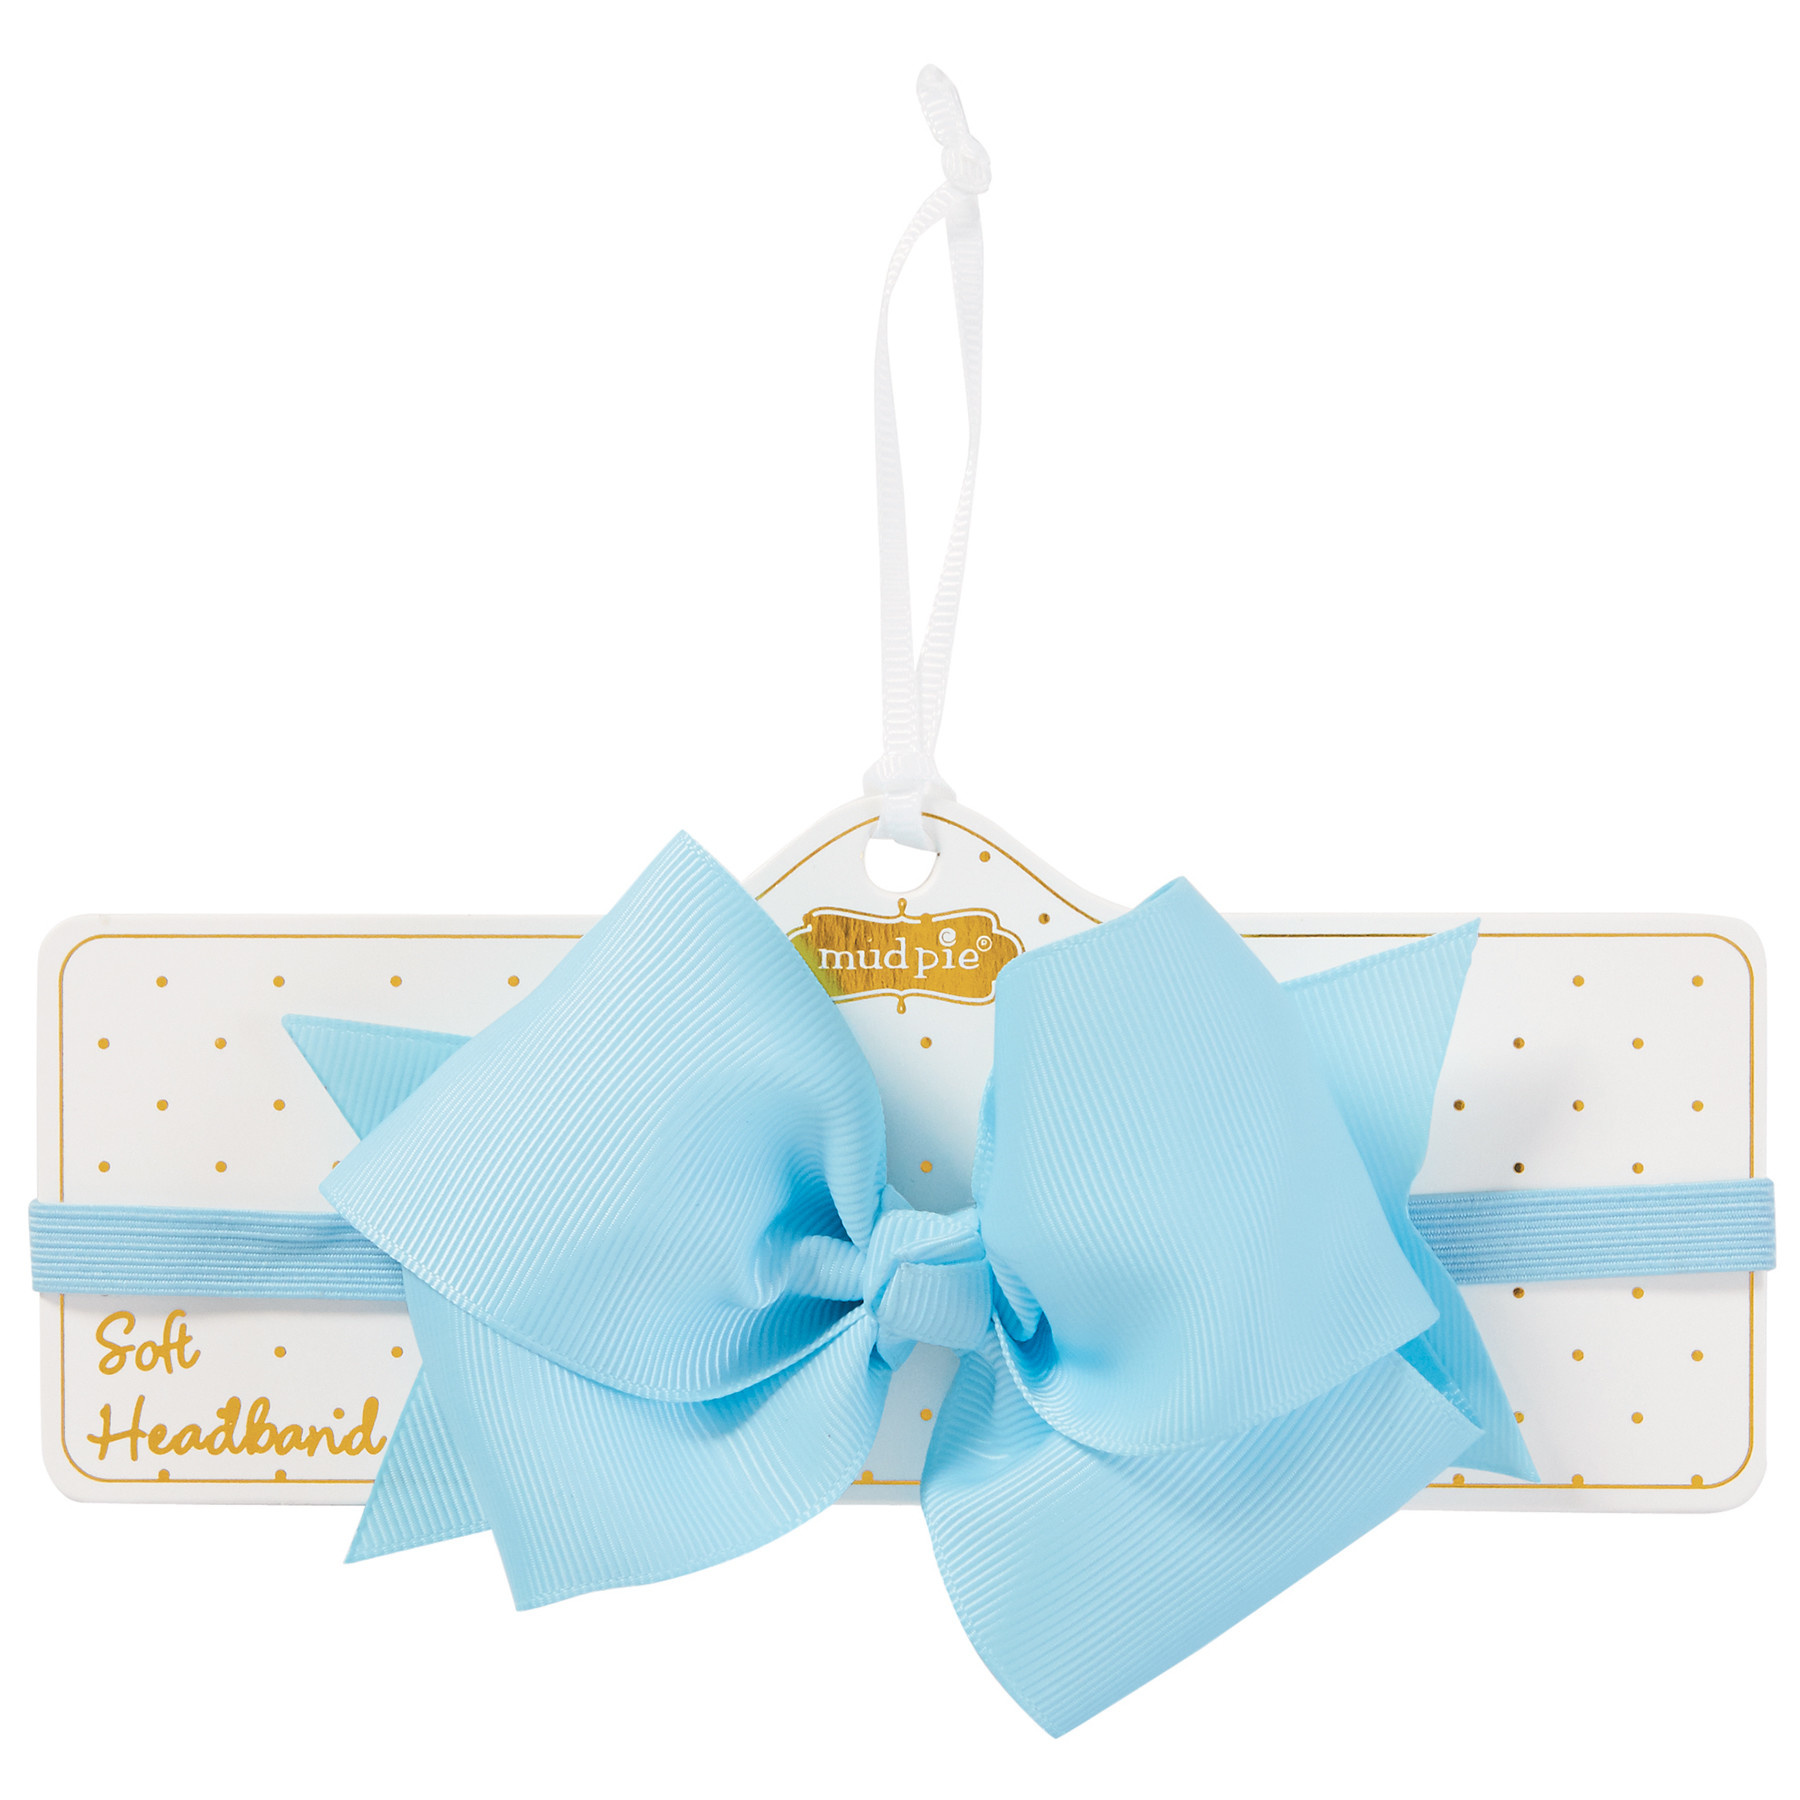 Mud Pie LIGHT BLUE BOW SOFT HEADBAND